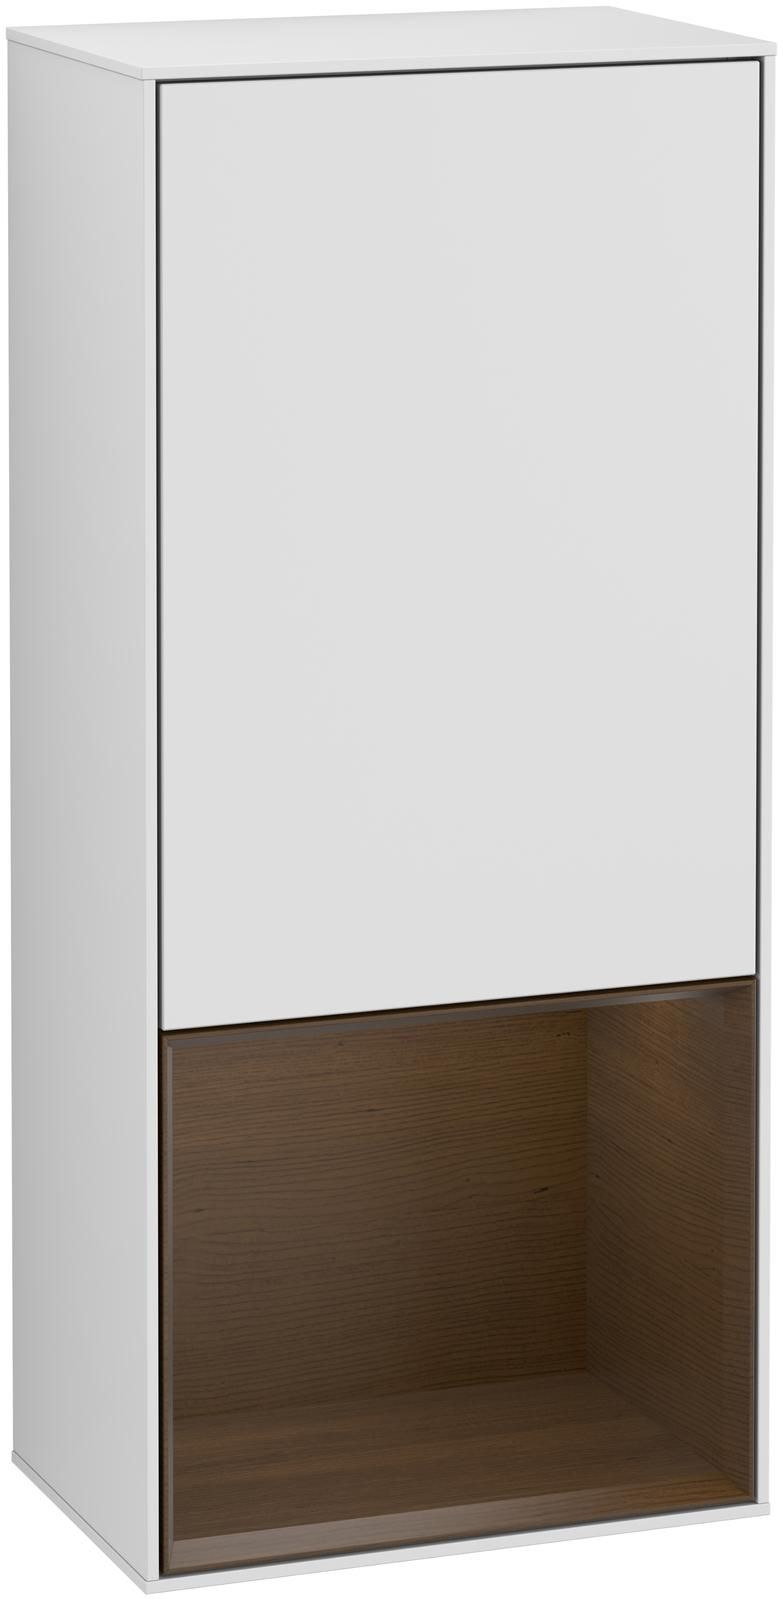 Villeroy & Boch Finion G54 Seitenschrank mit Regalelement 1 Tür Anschlag links LED-Beleuchtung B:41,8xH:93,6xT:27cm Front, Korpus: Weiß Matt Soft Grey, Regal: Walnut Veneer G540GNMT